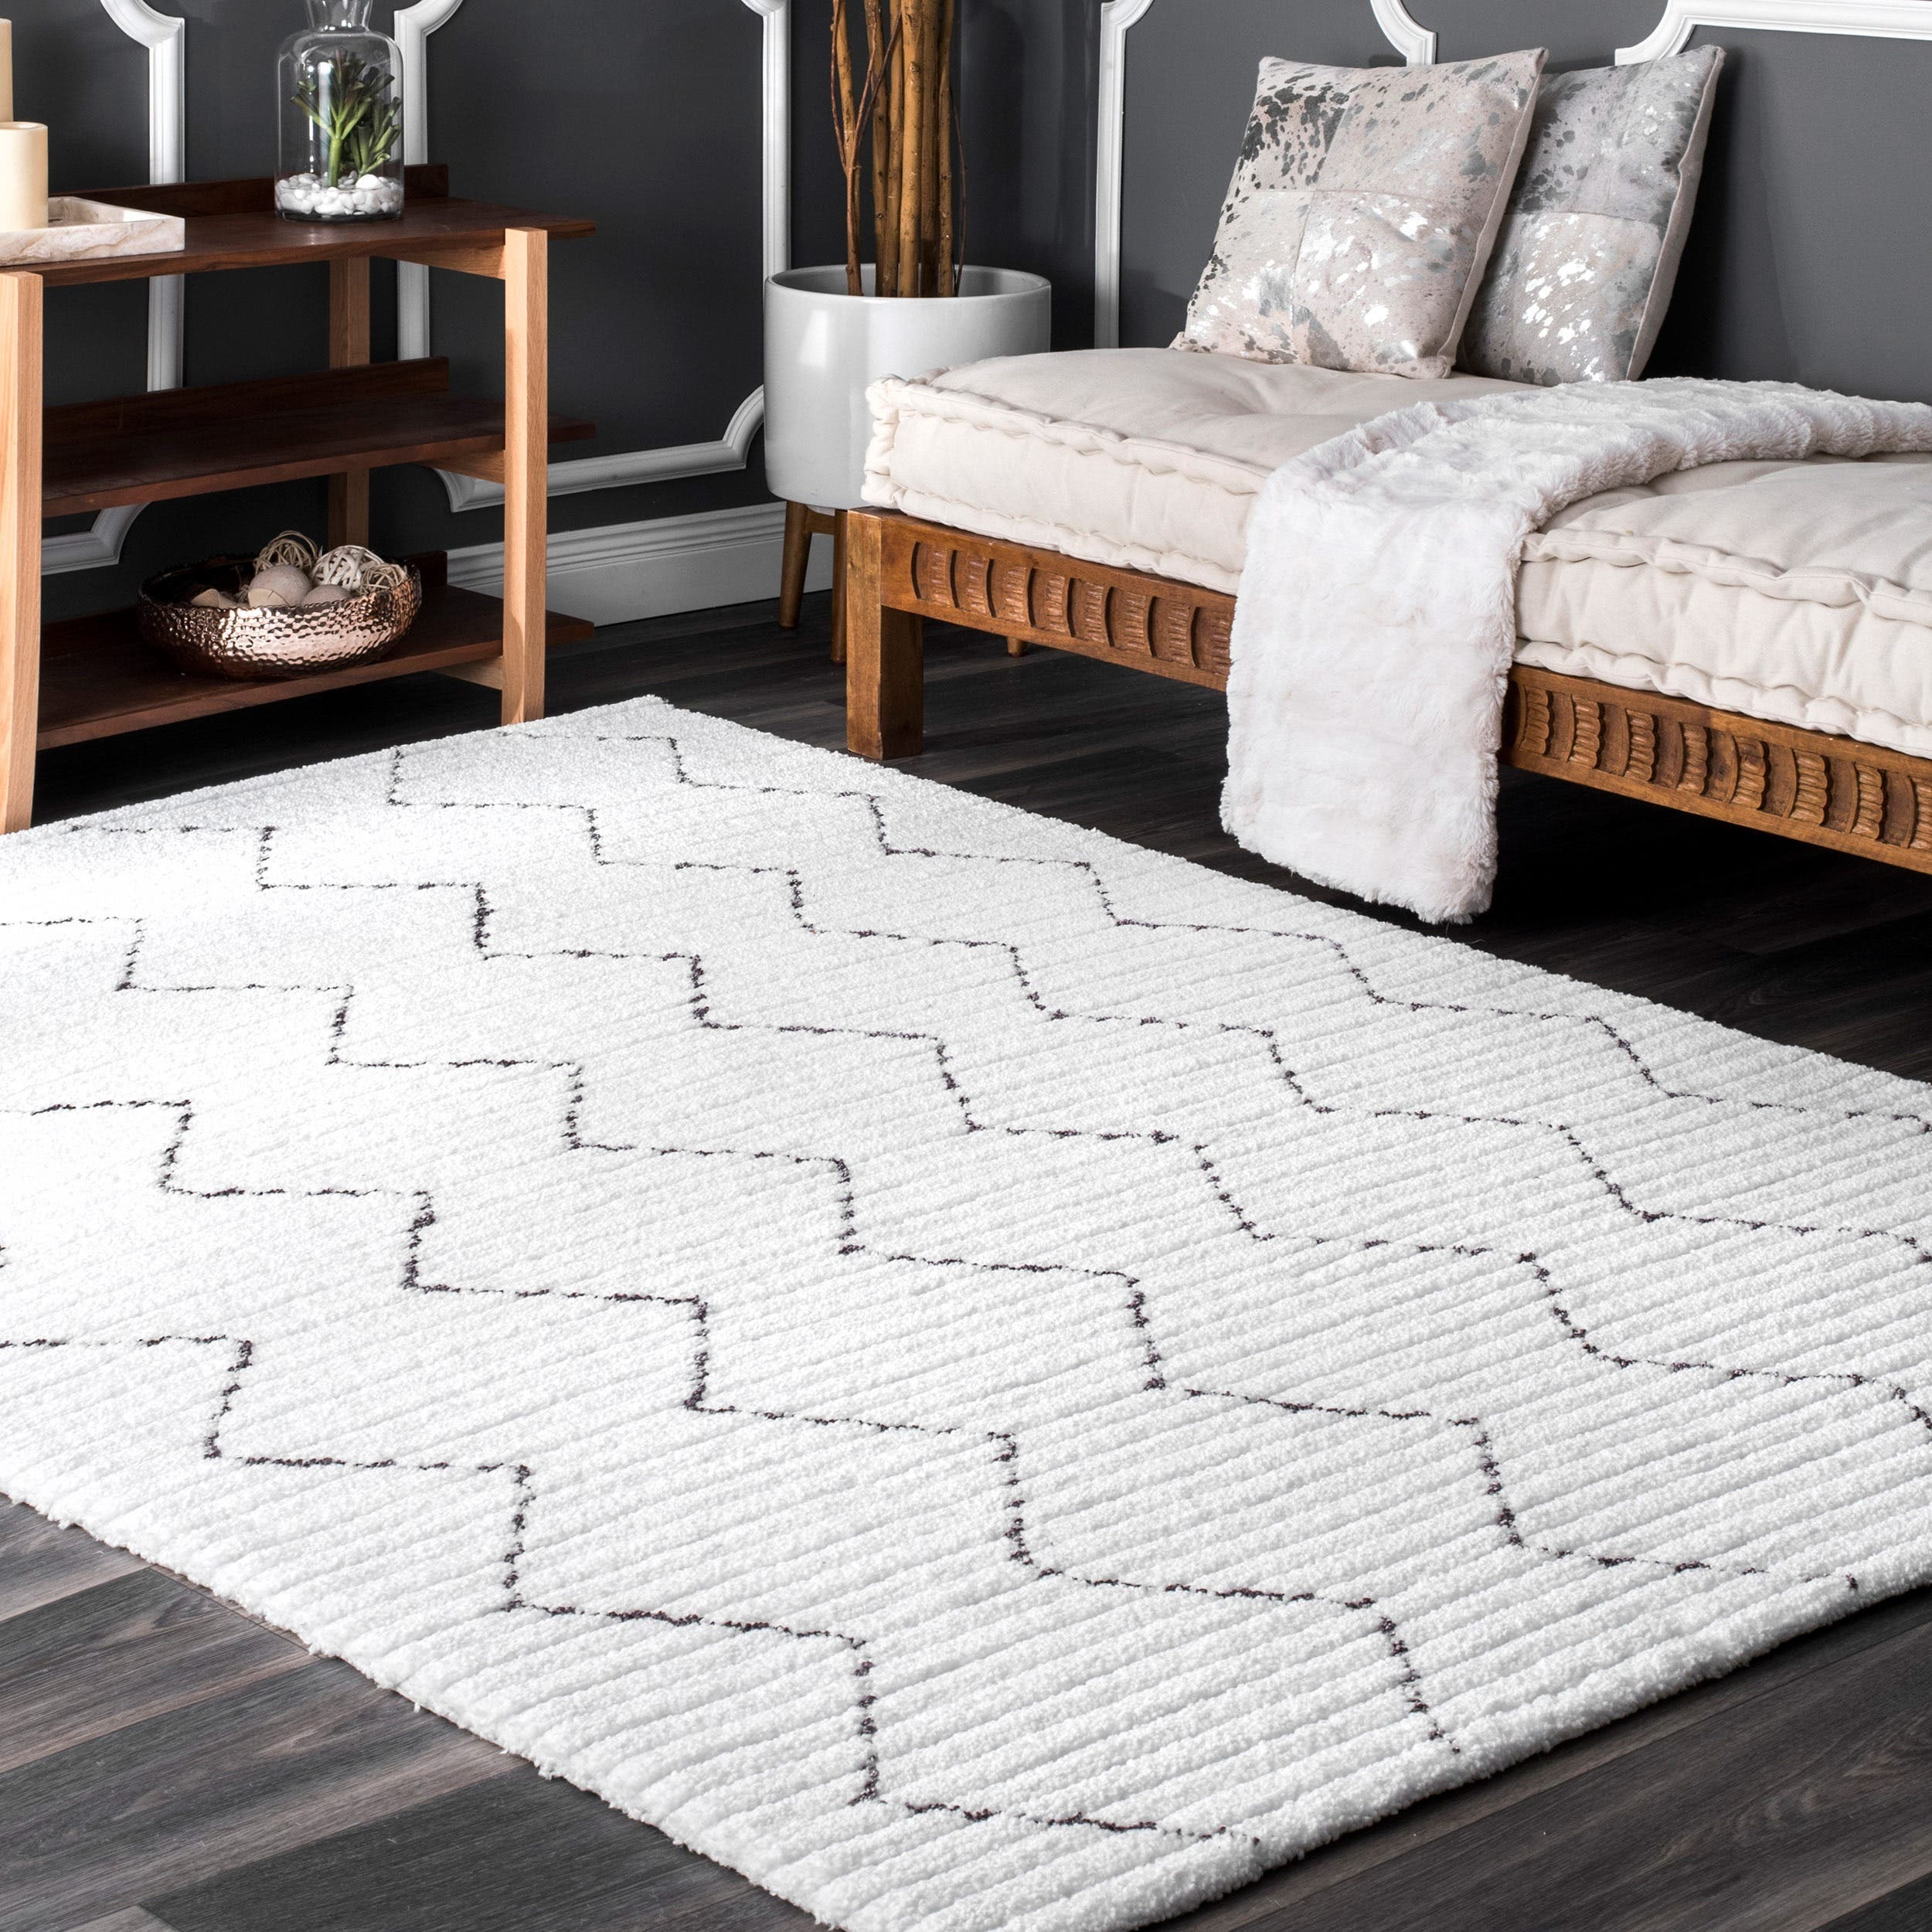 Buy 6' X 9' Area Rugs Online At Overstock.com